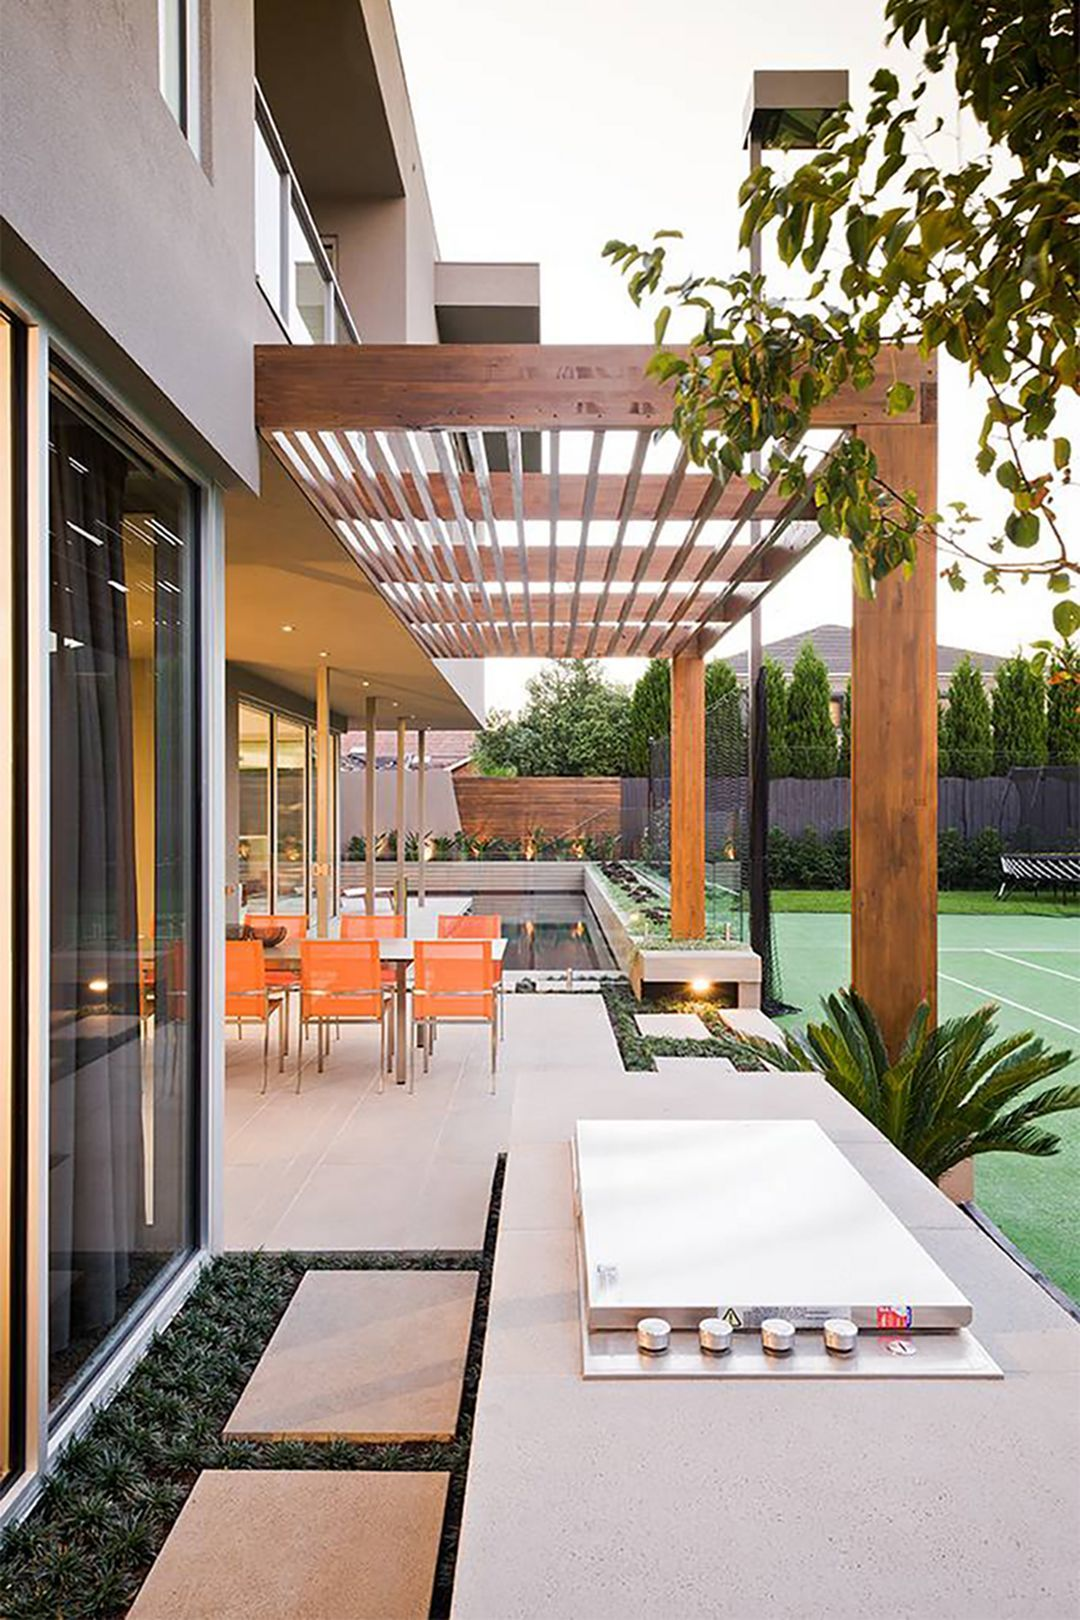 35 Best Modern Pergola Design Ideas for Relaxing Spaces on Your Home Yard